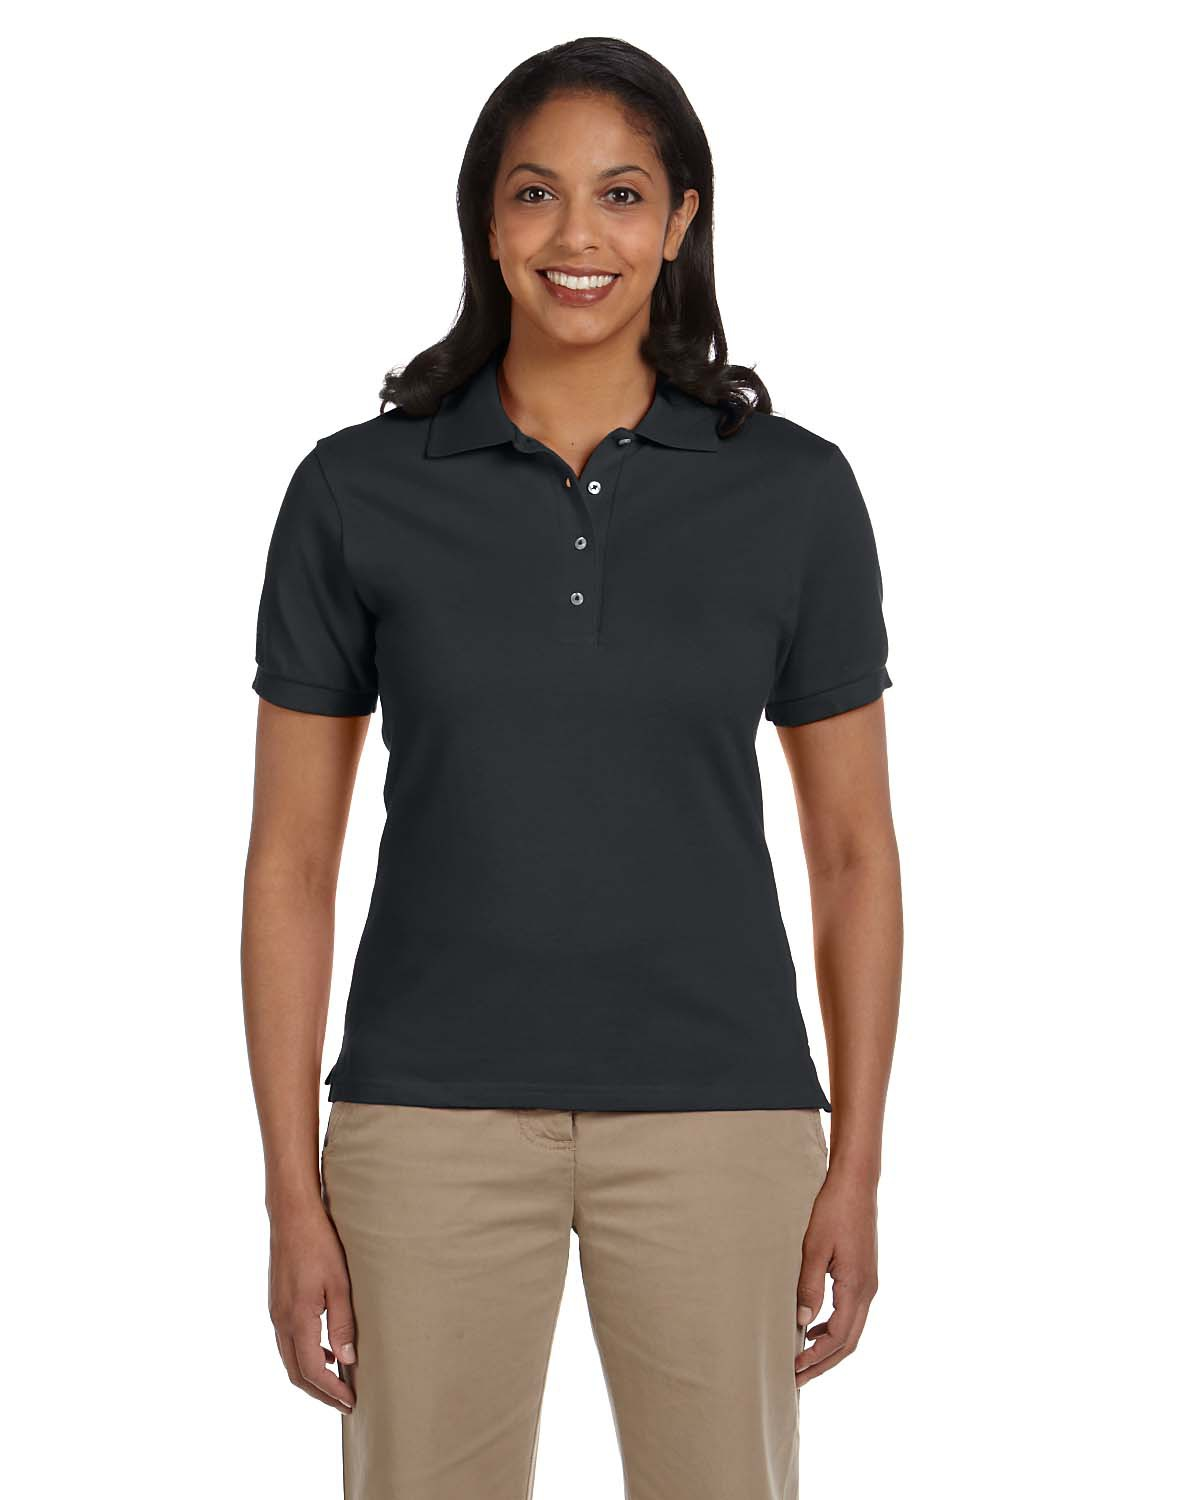 Ladies' 6.5 oz. Ringspun Cotton Piqué Polo